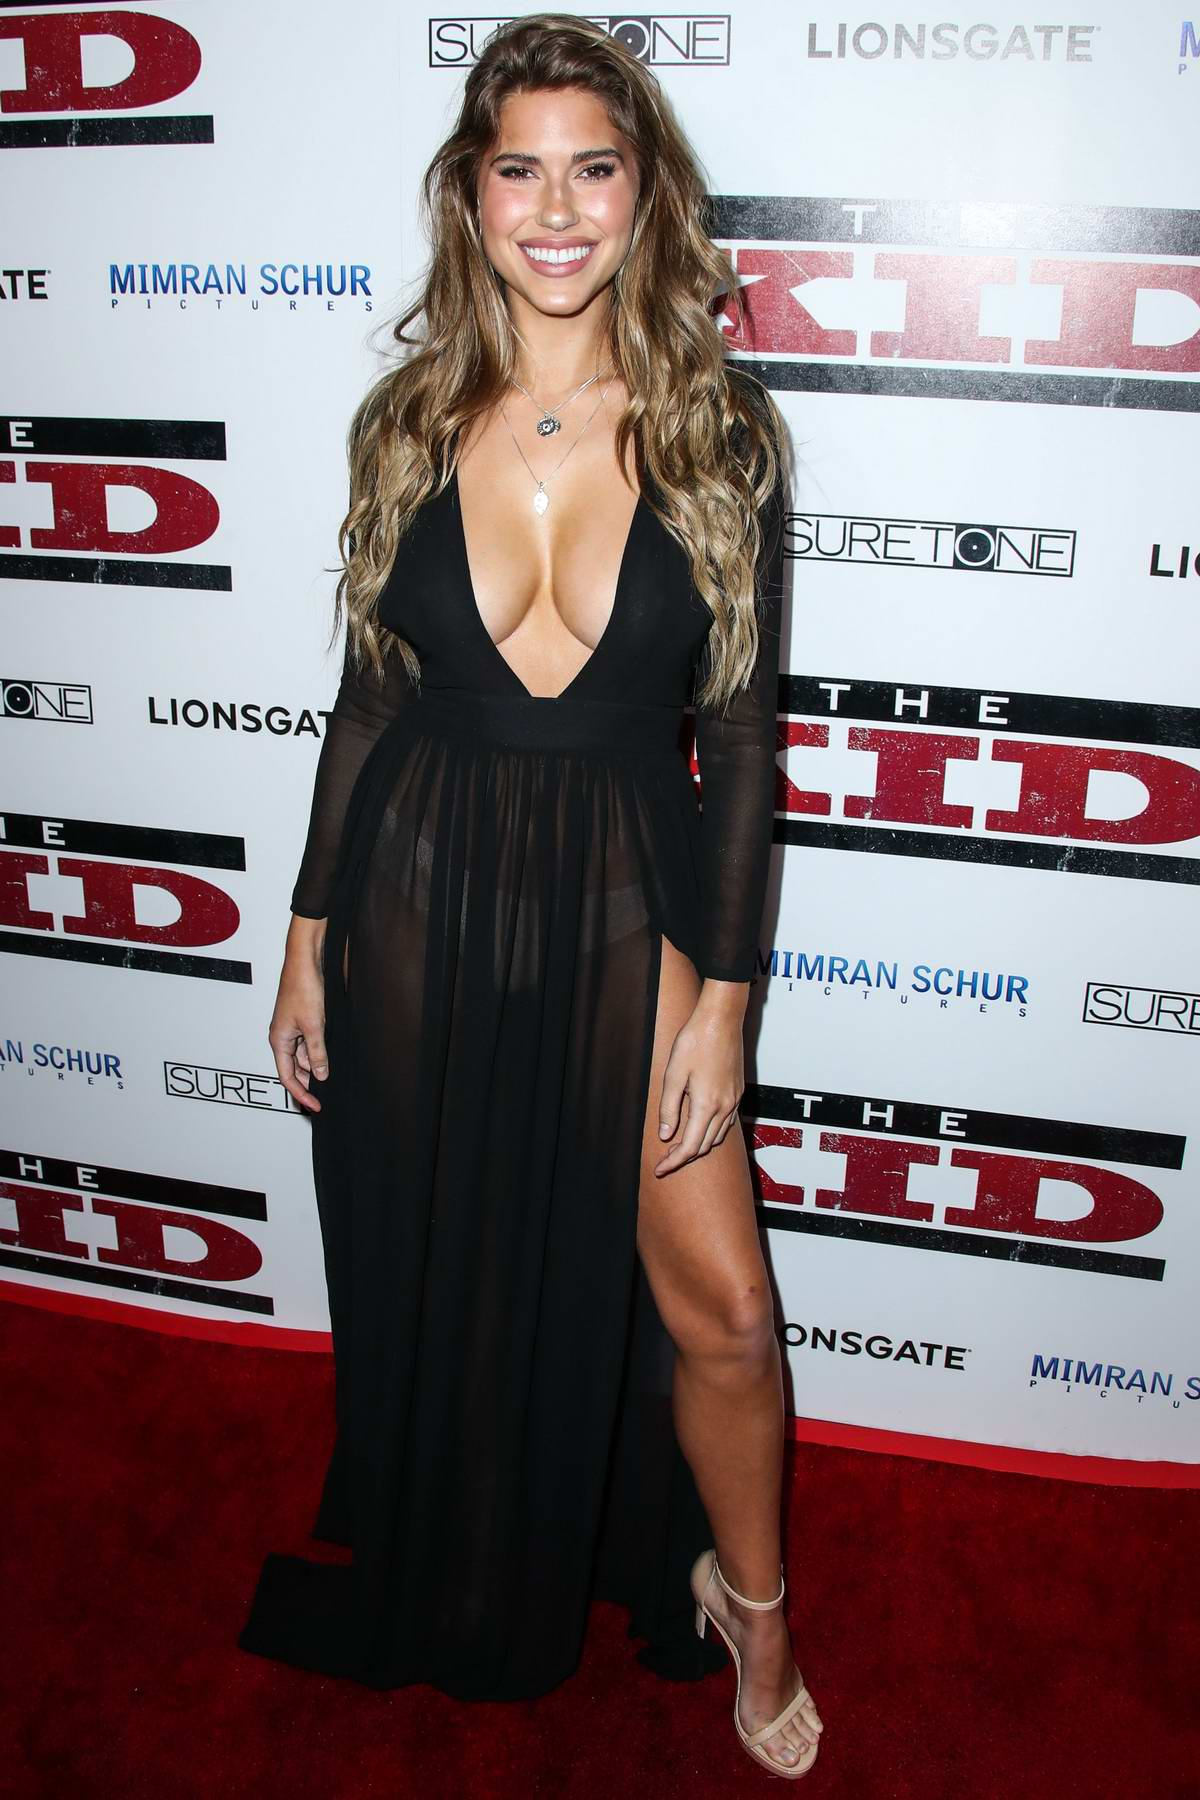 Kara Del Toro attends 'The Kid' Film Premiere at ArcLight Cinemas in Los Angeles